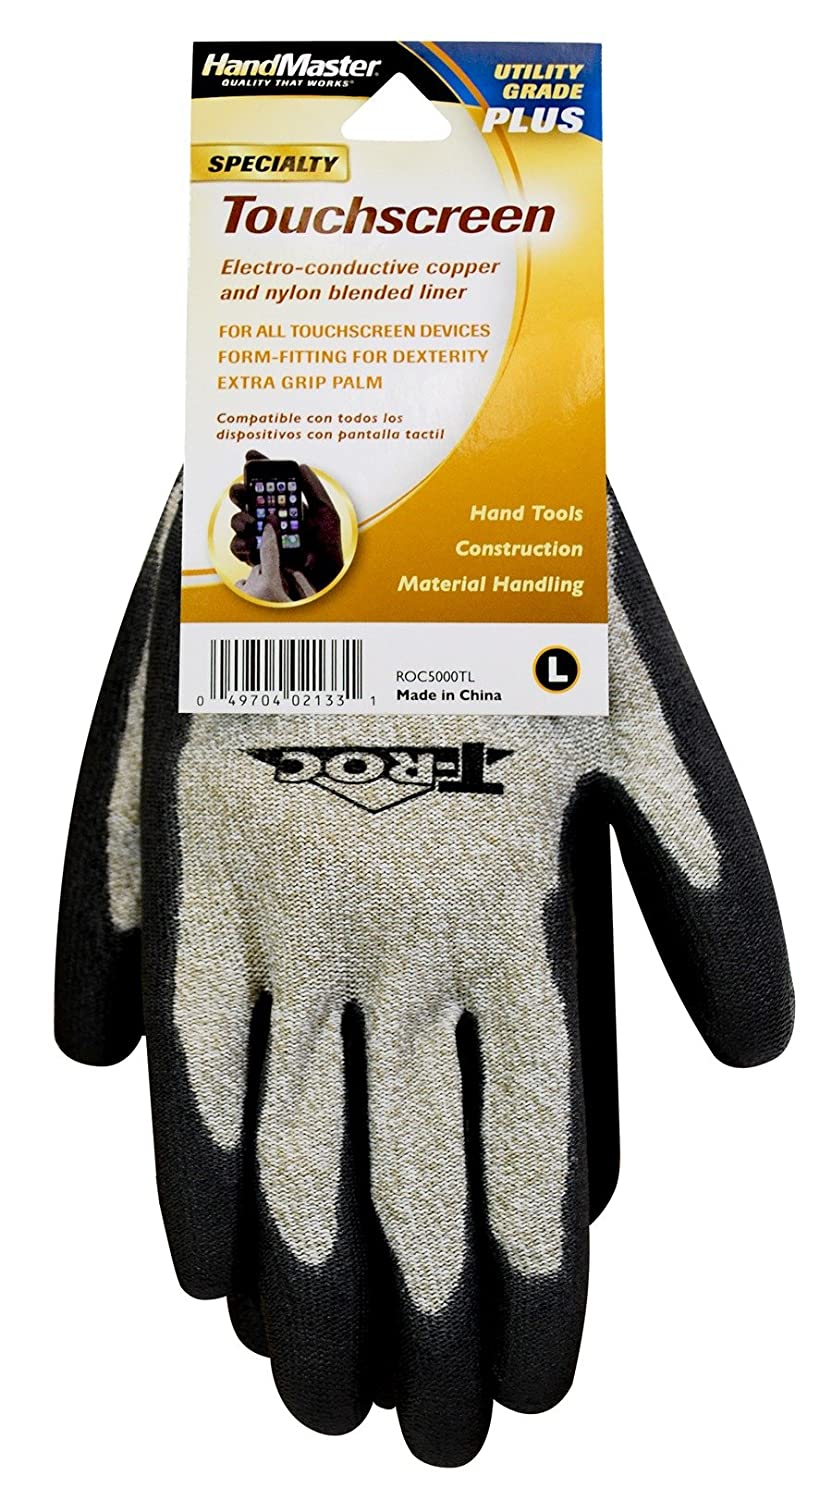 Magid ROC5000T Touchscreen Smart Phone Glove Small Magid Glove /& Safety Manufacturing Company ROC5000TS